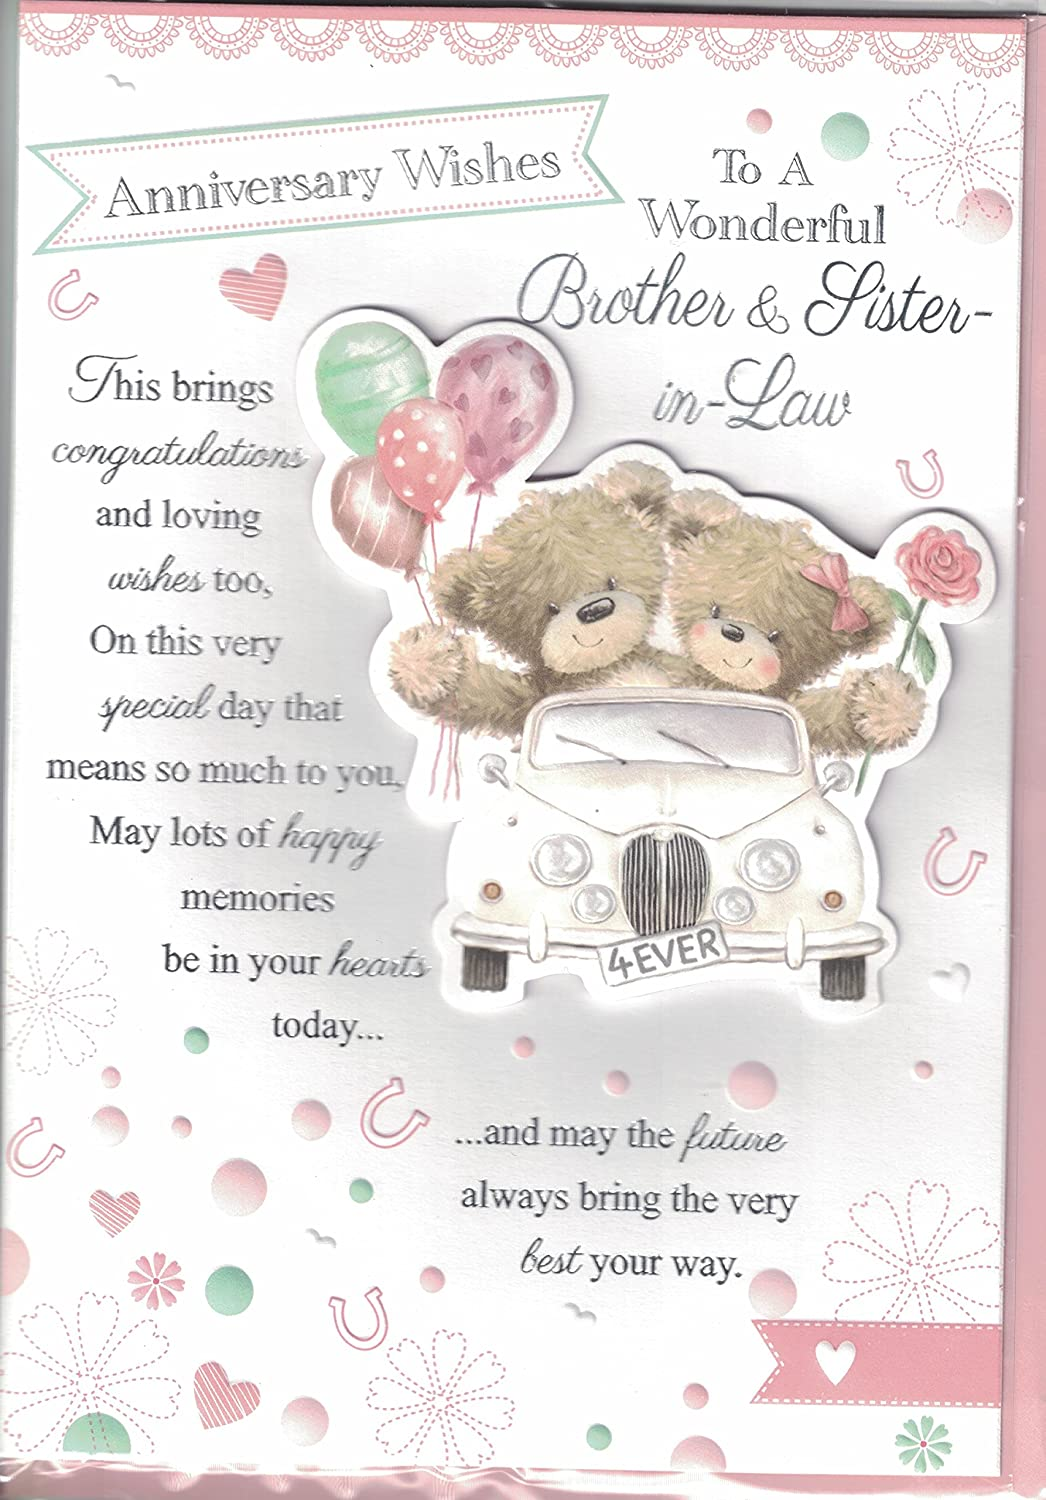 wedding anniversary wishes images for brother and sister in law